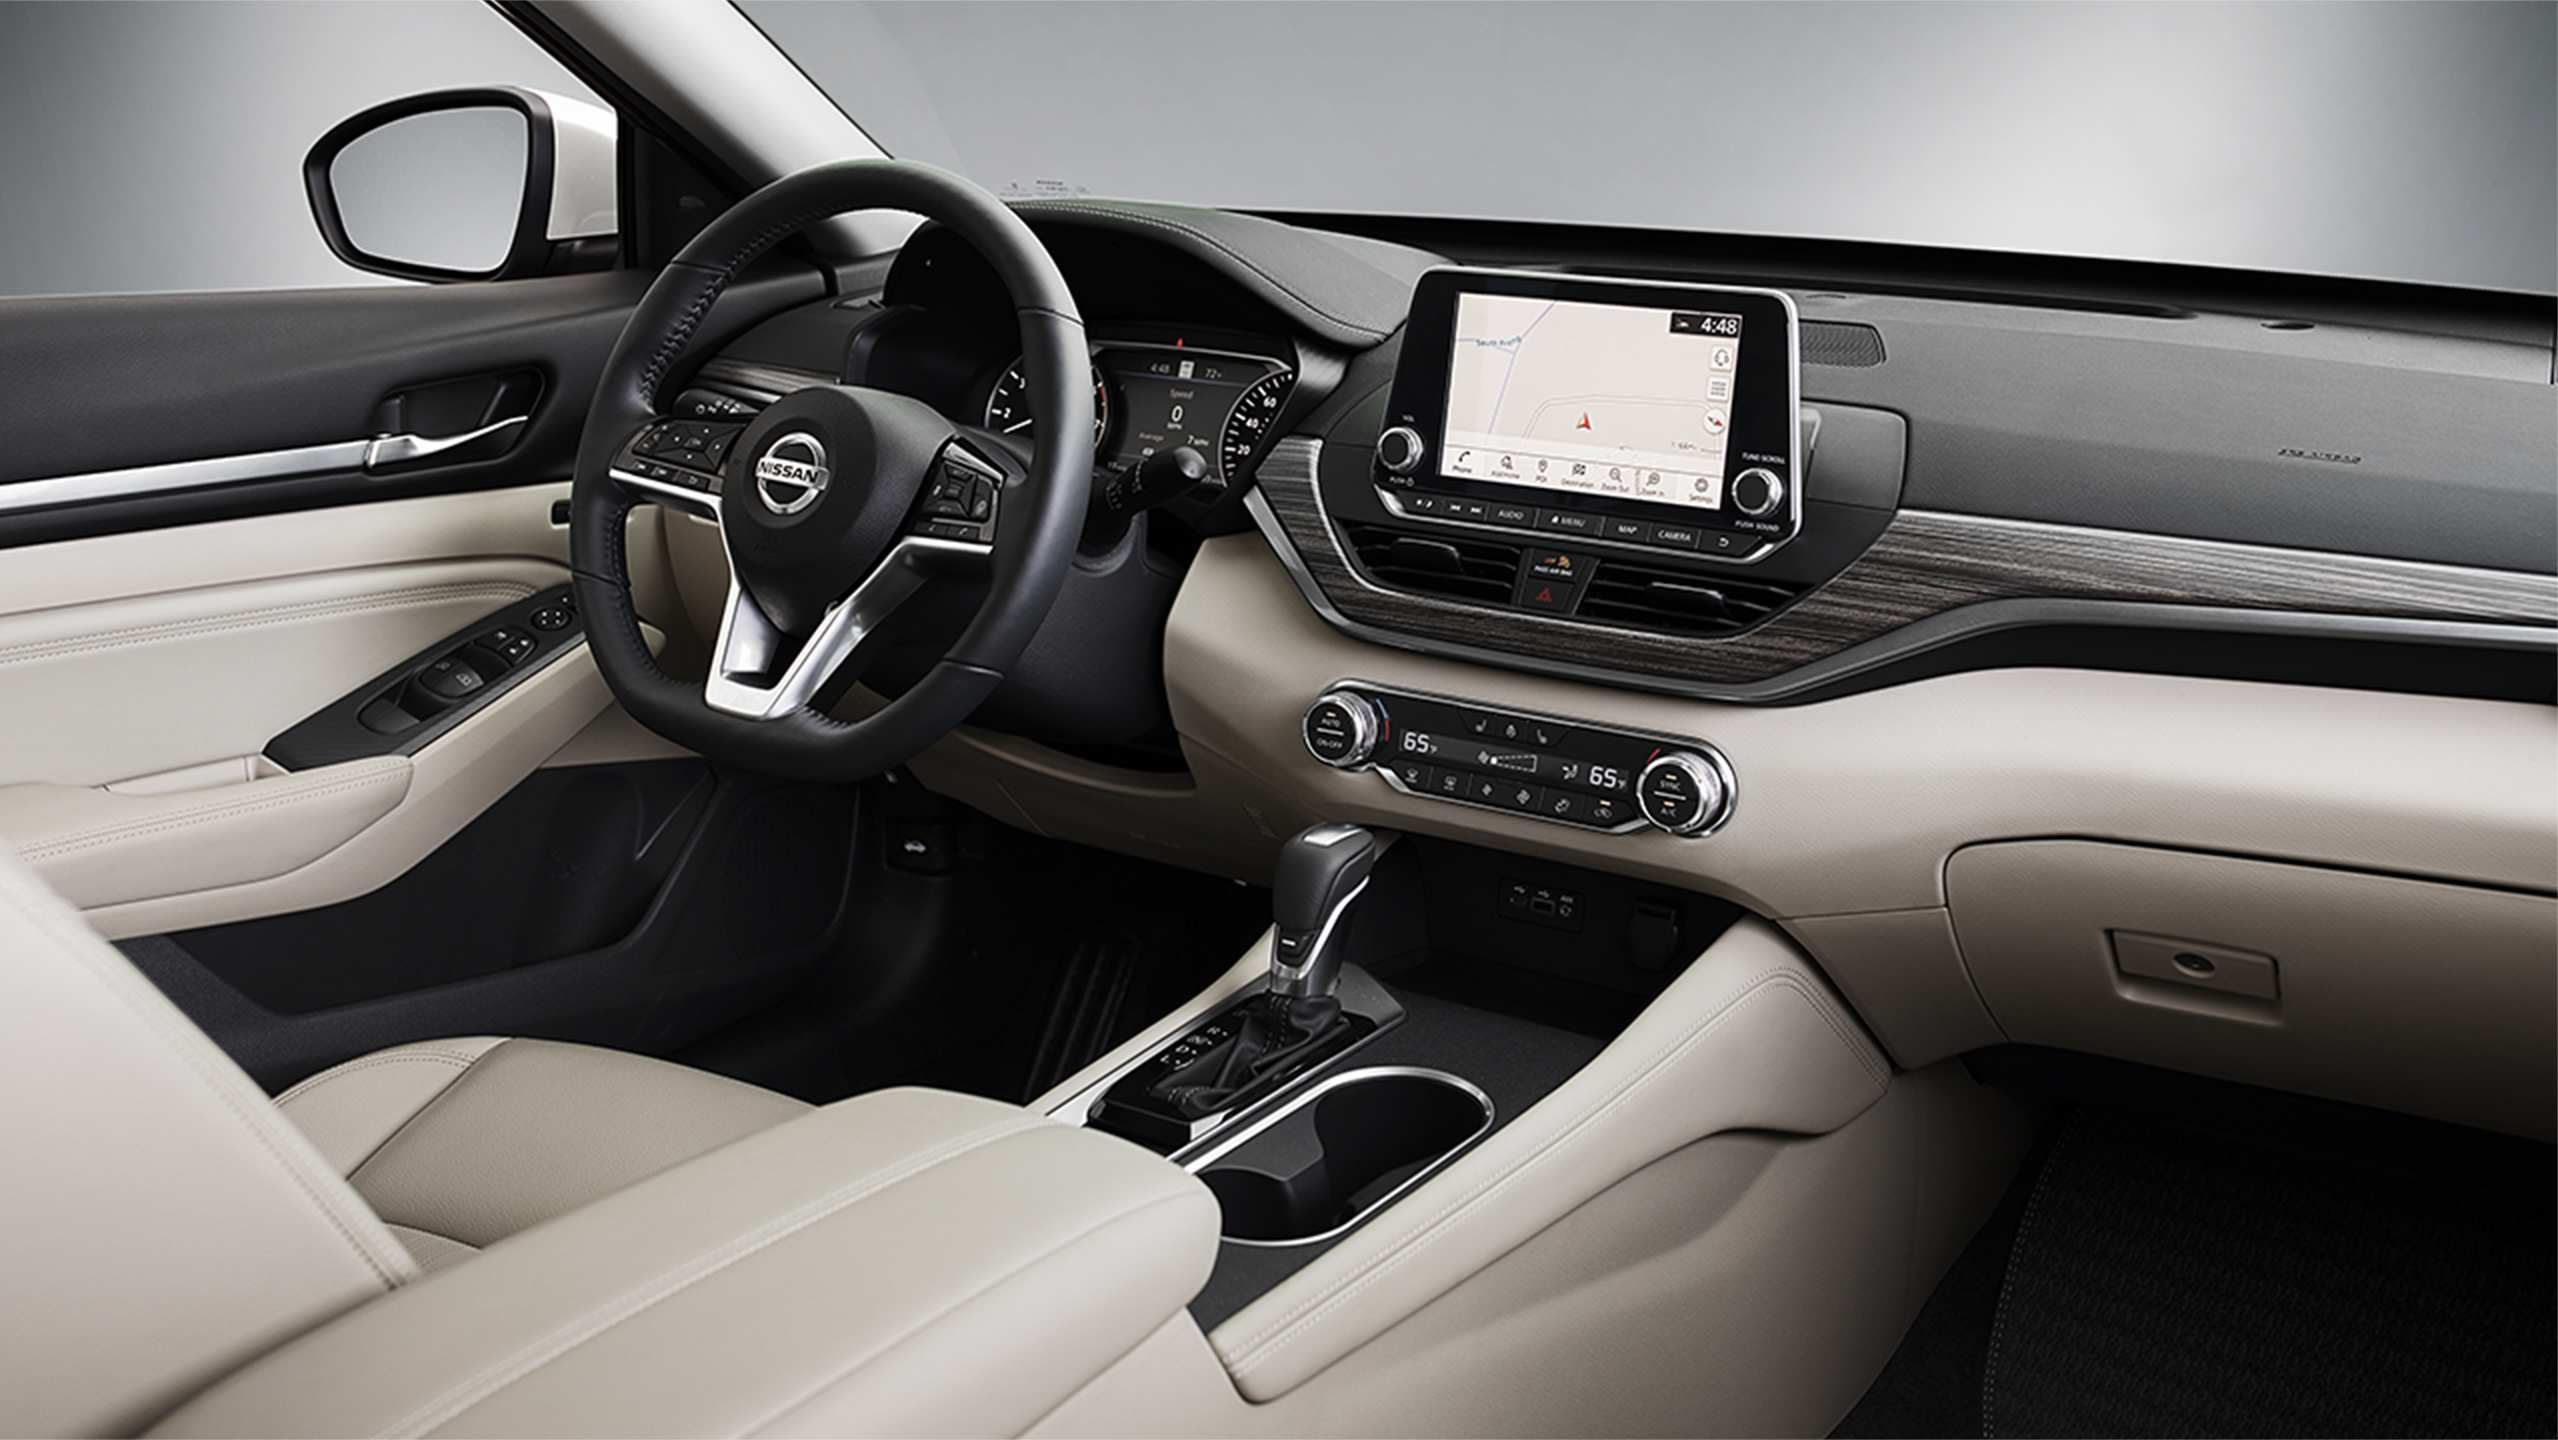 69 Gallery of 2019 Nissan Altima Interior Engine for 2019 Nissan Altima Interior